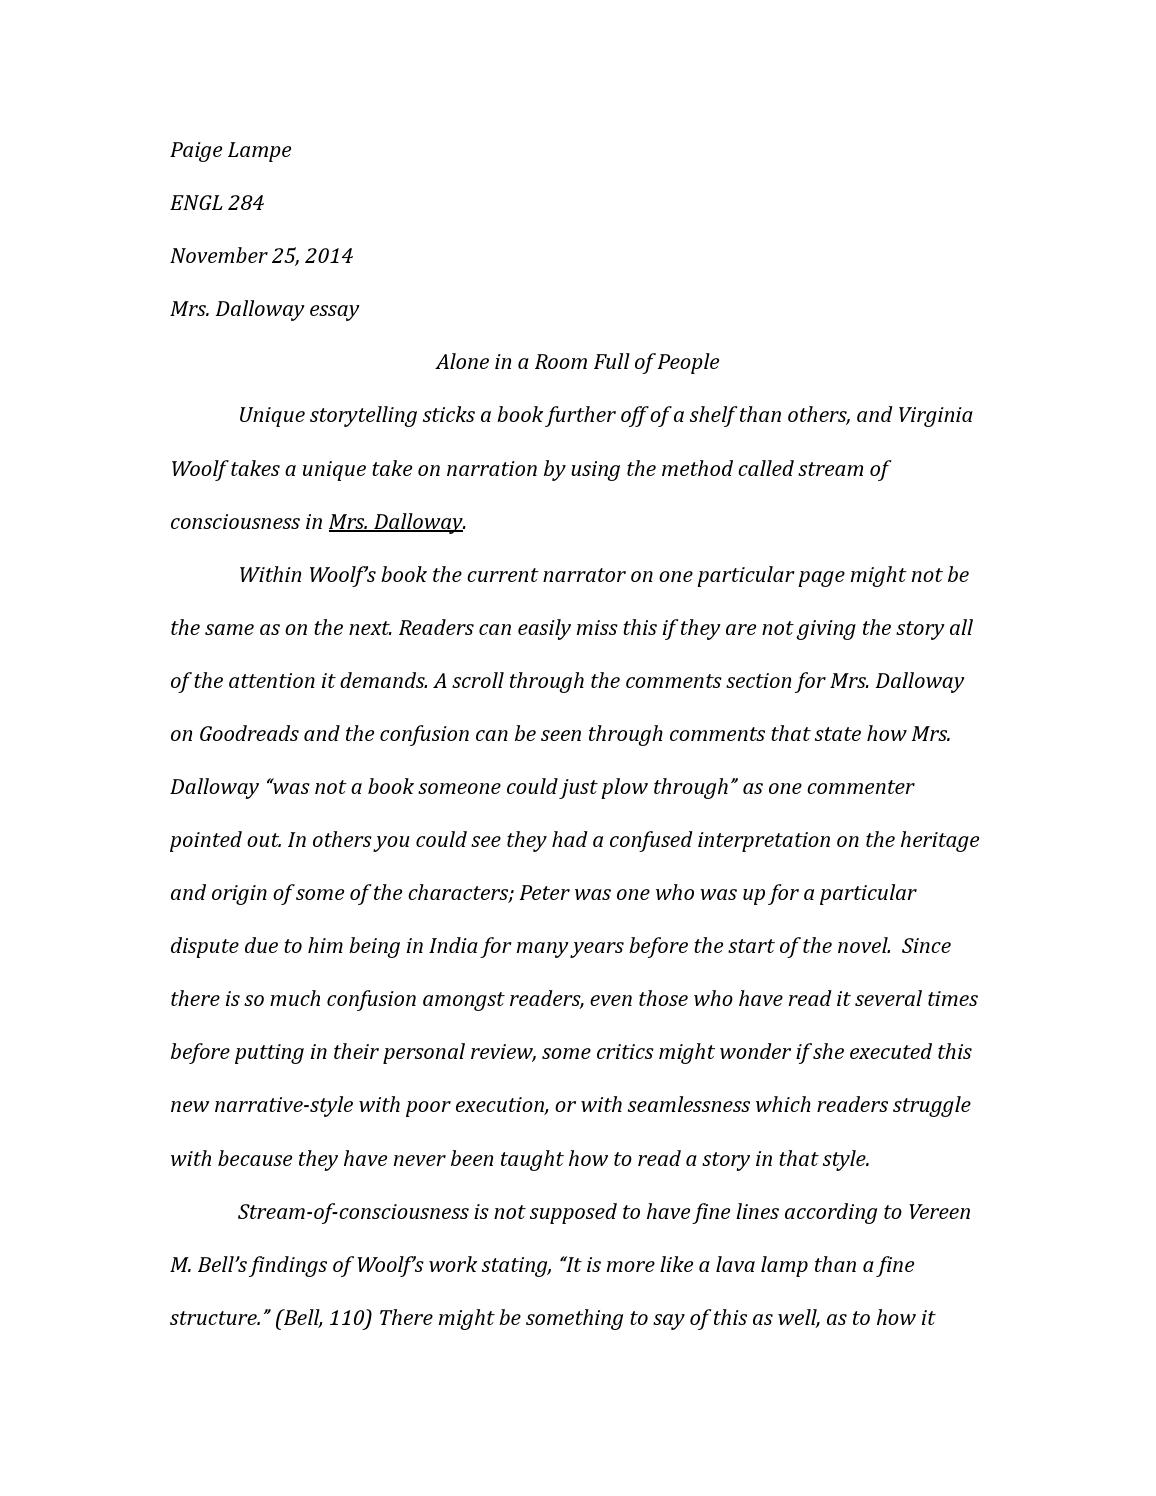 002 Mrs Dalloway Essay Page 1 Marvelous Analysis Critical Essays